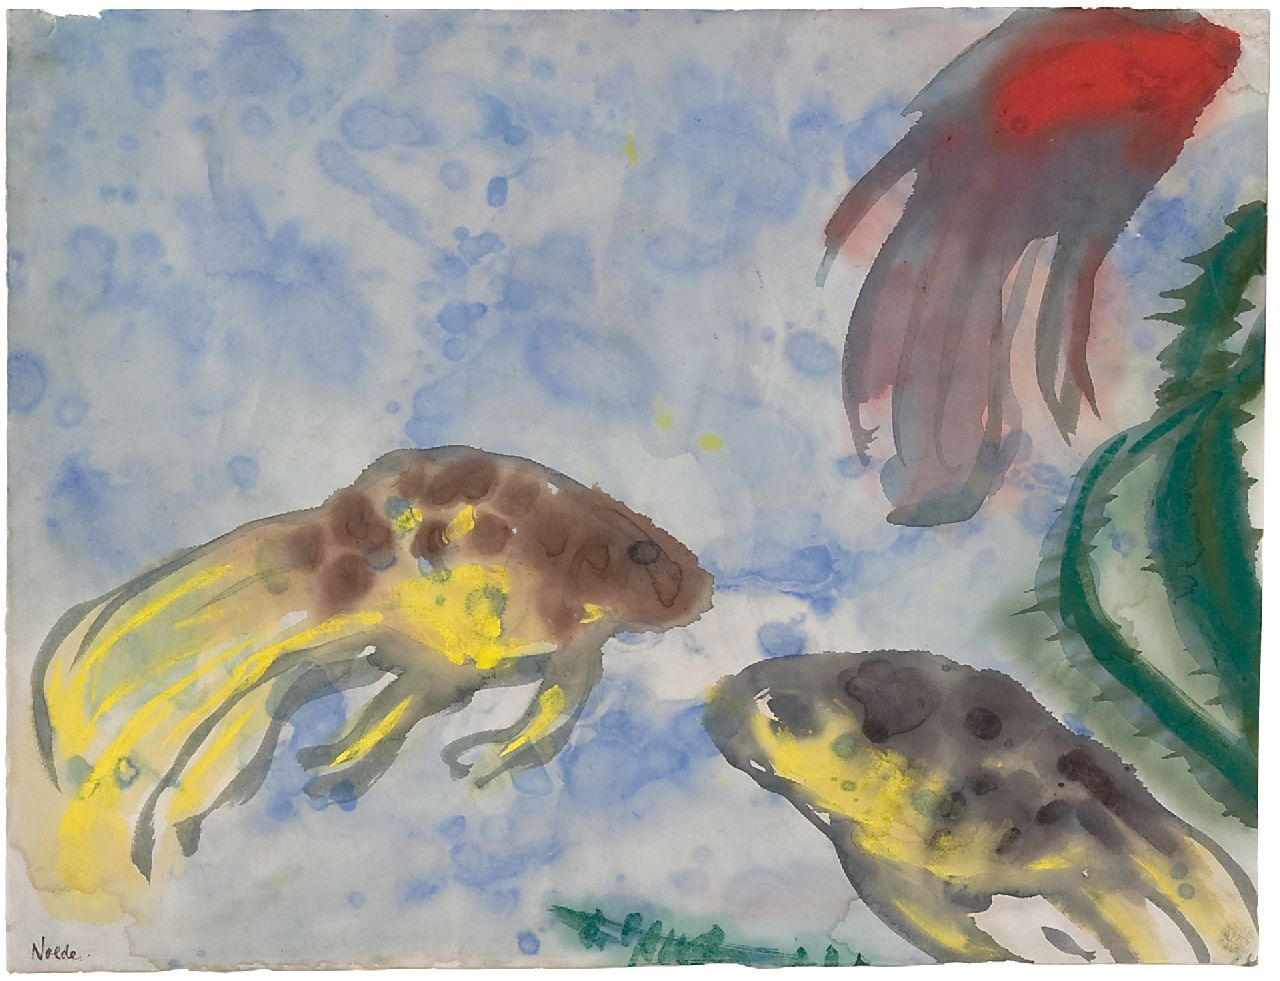 Emil Nolde | Veiltails (Aquarium), watercolour on Japanese paper, 35.8 x 47.0 cm, signed l.l. and painted in Berlin 1923-1924